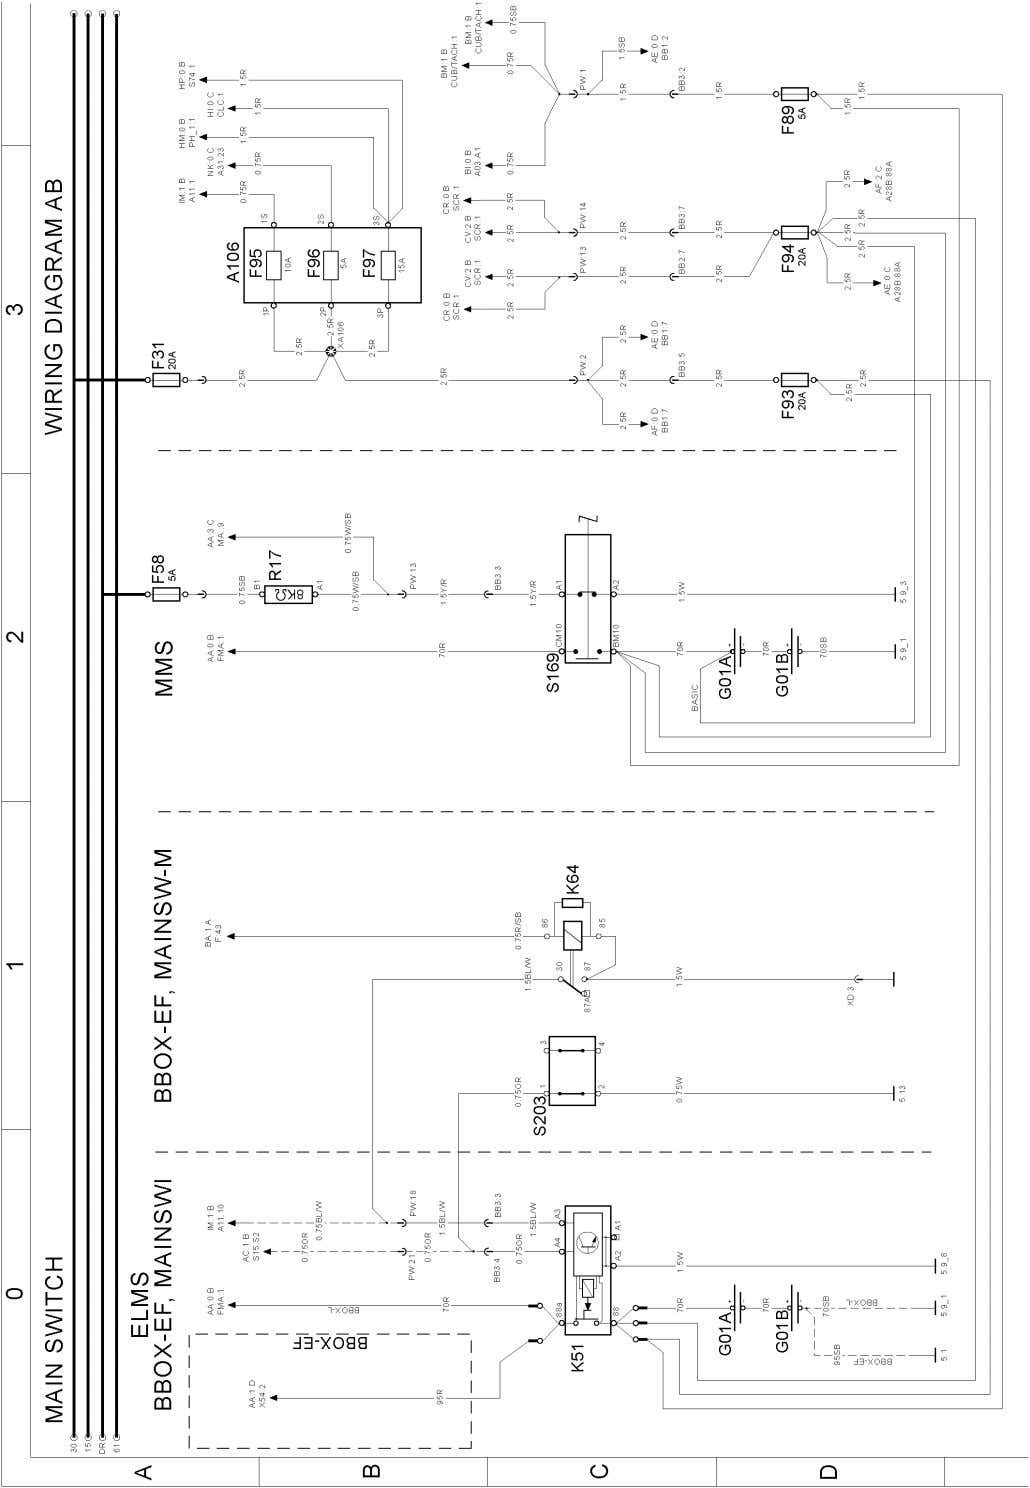 T3059889 Page 8 (298) Wiring diagram